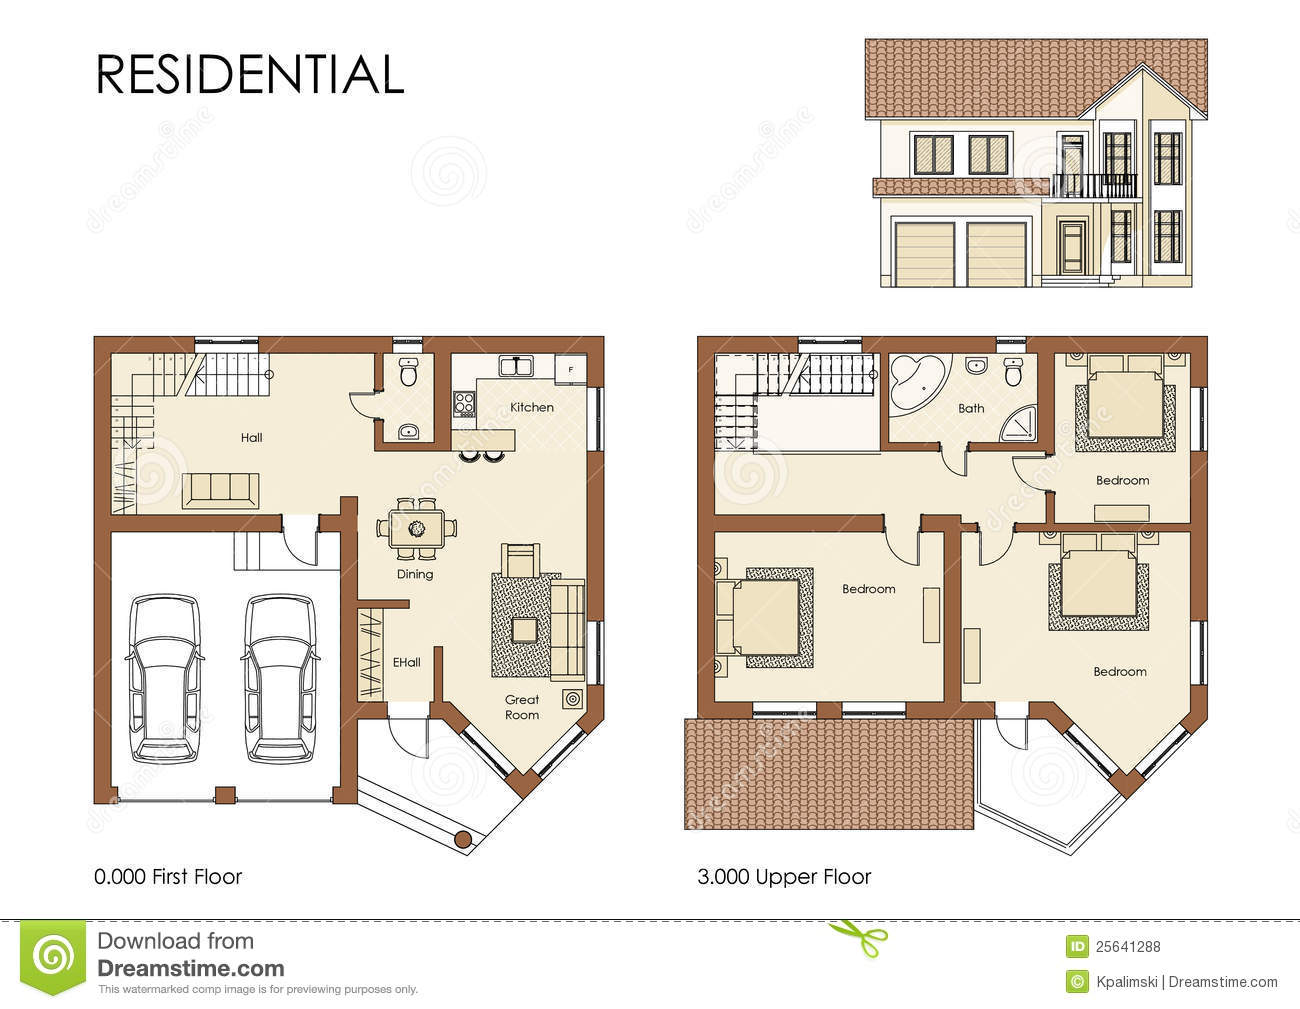 Residential house plan stock illustration illustration of for Building design program online